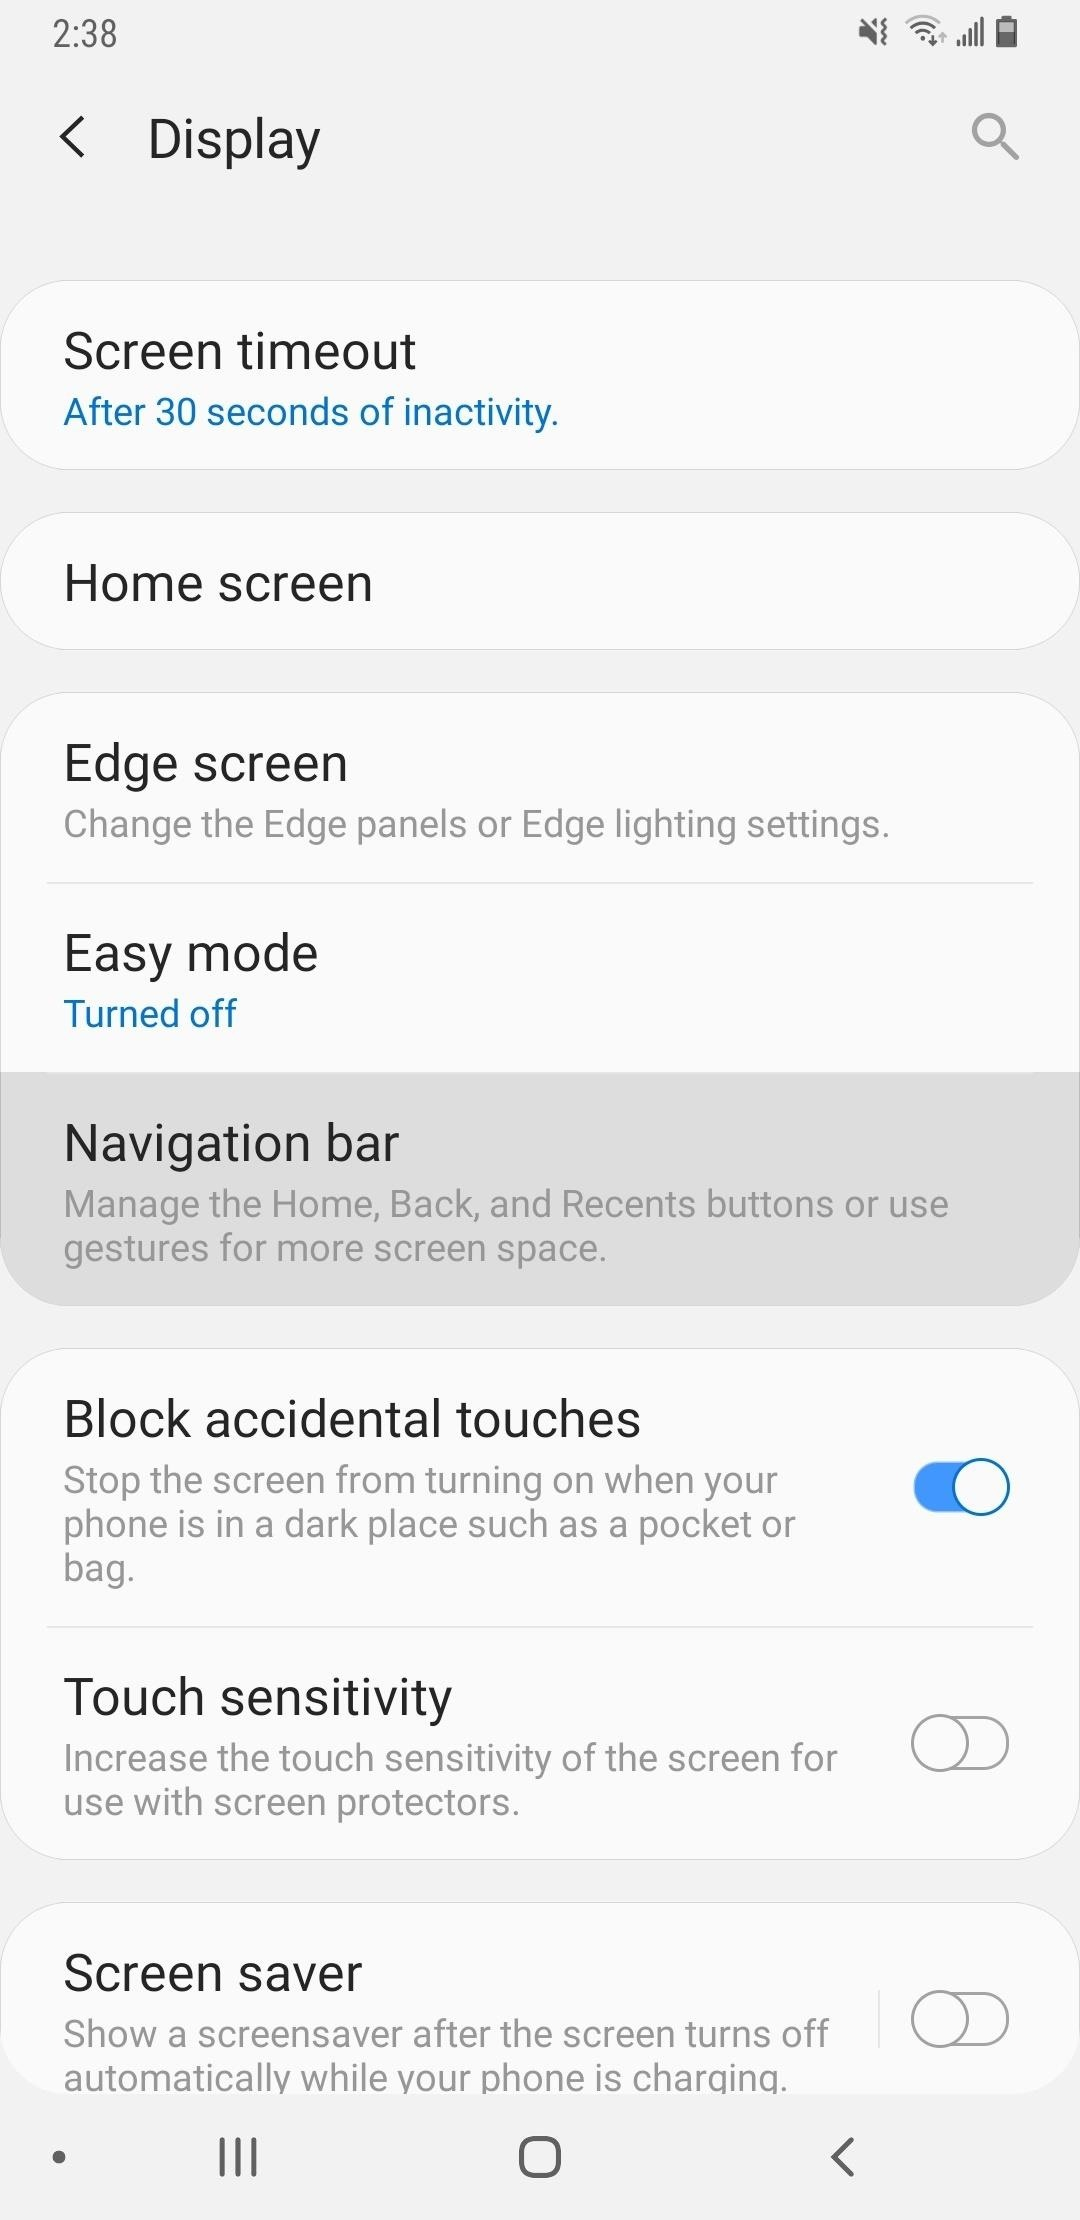 How to Enable Samsung's New Swipe Gestures on Your Galaxy in One UI